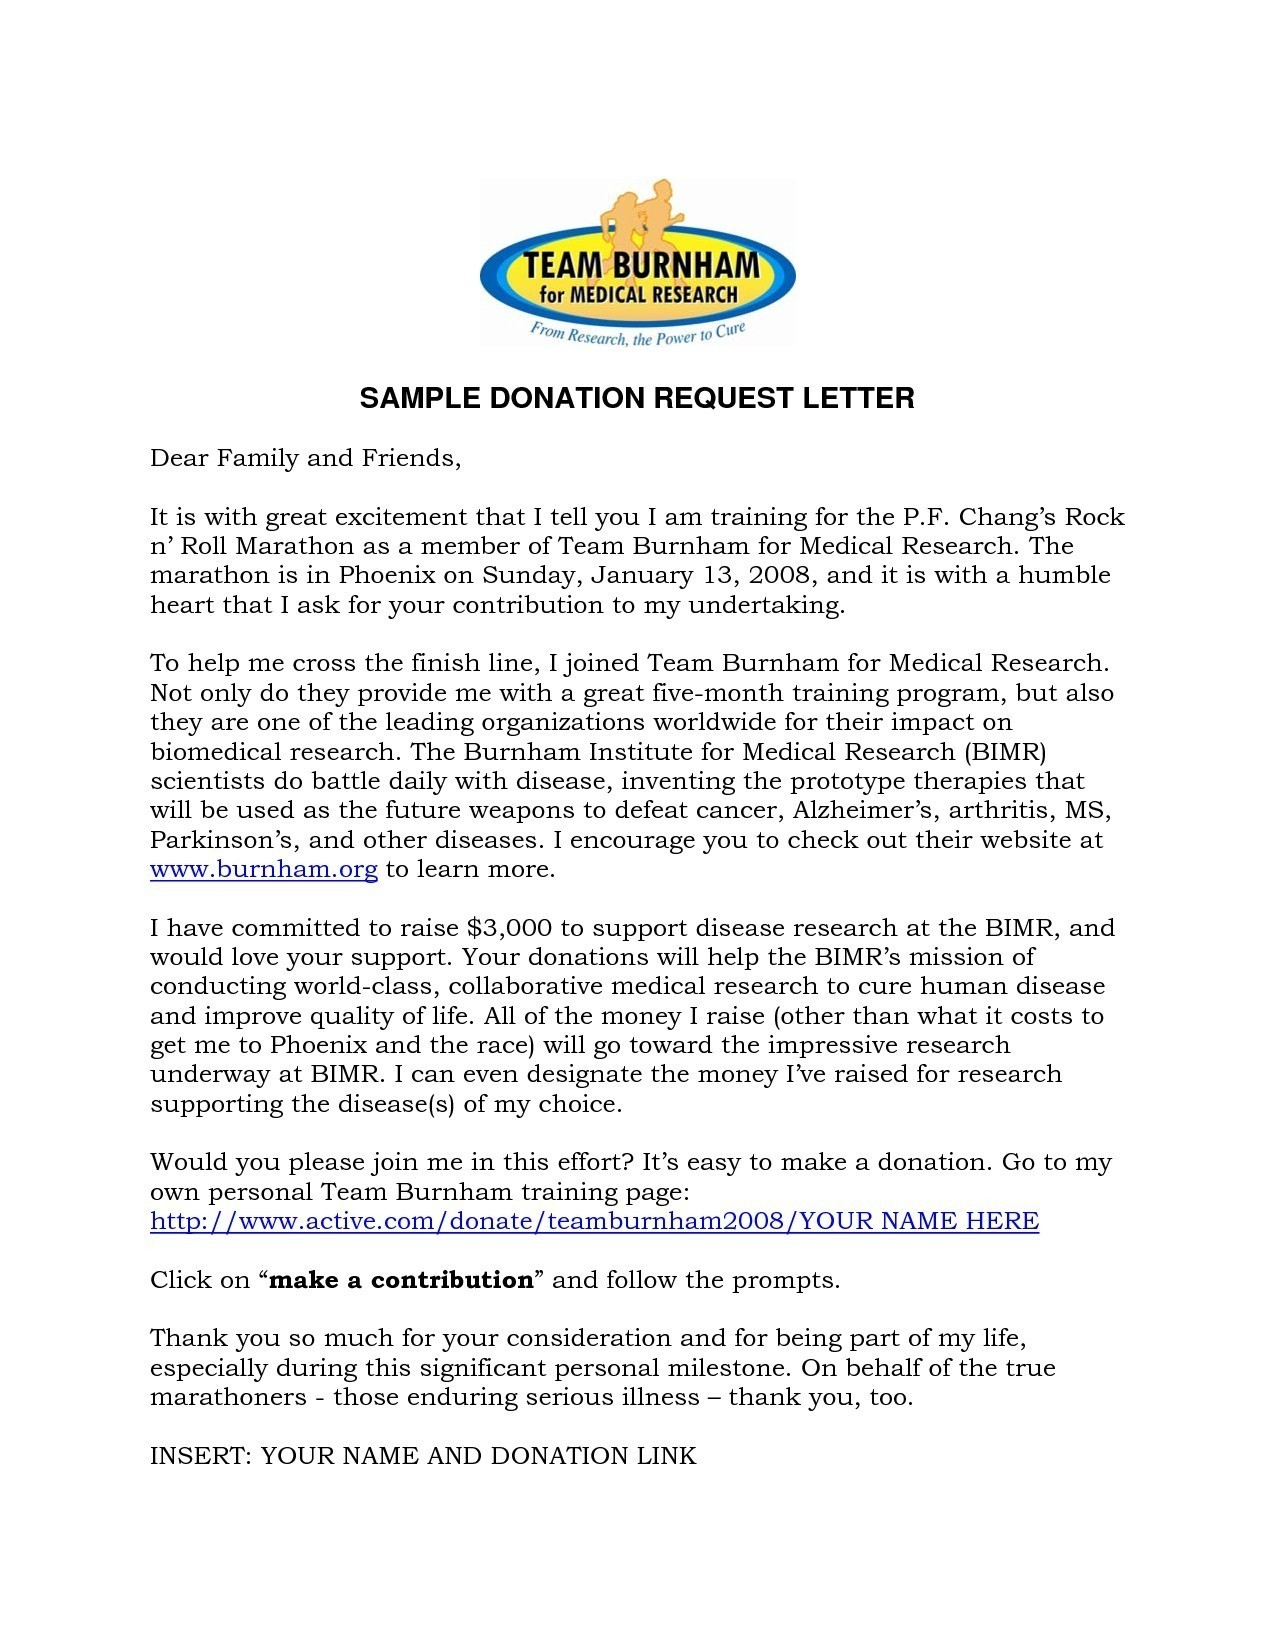 Fundraiser Request Letter Template - Samples Letters Request Donation New Sample Letters for Request for